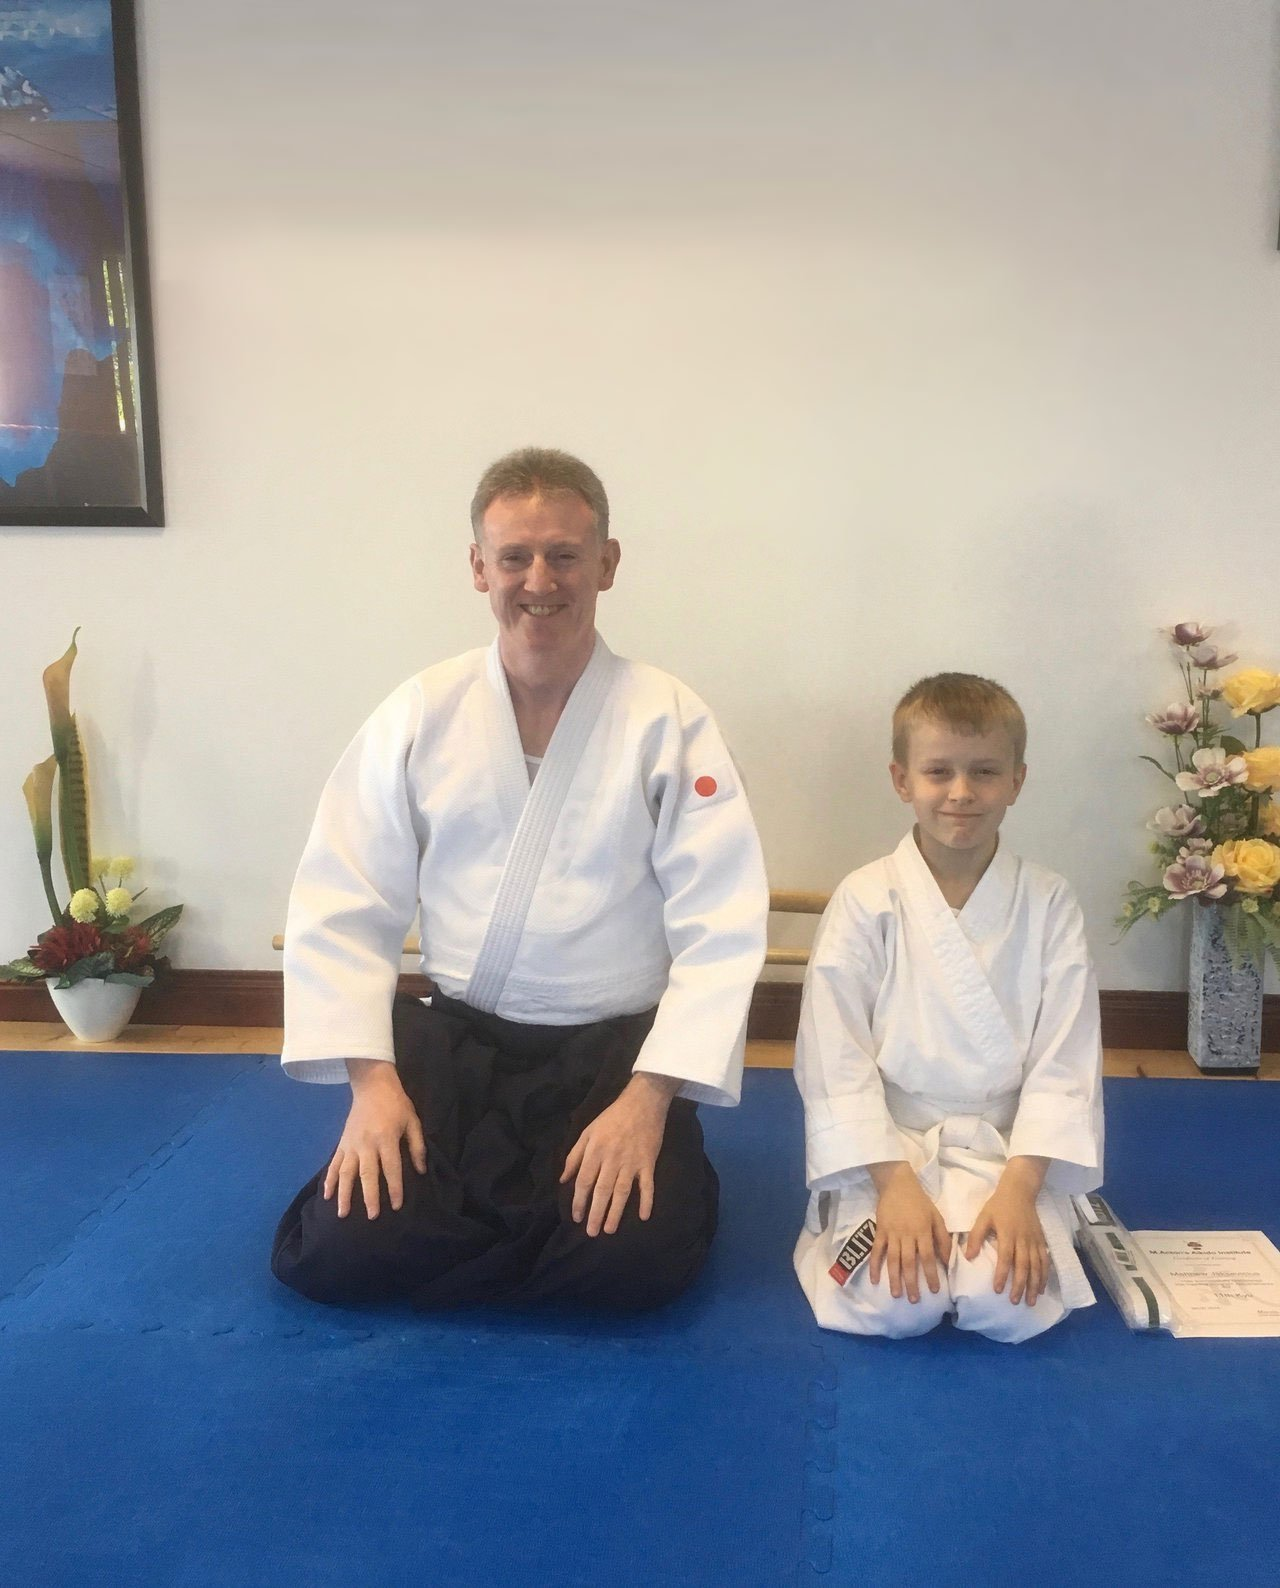 Matthew Smith receiving his certificate for passing his grade. Martin Acton's Aikido Institute